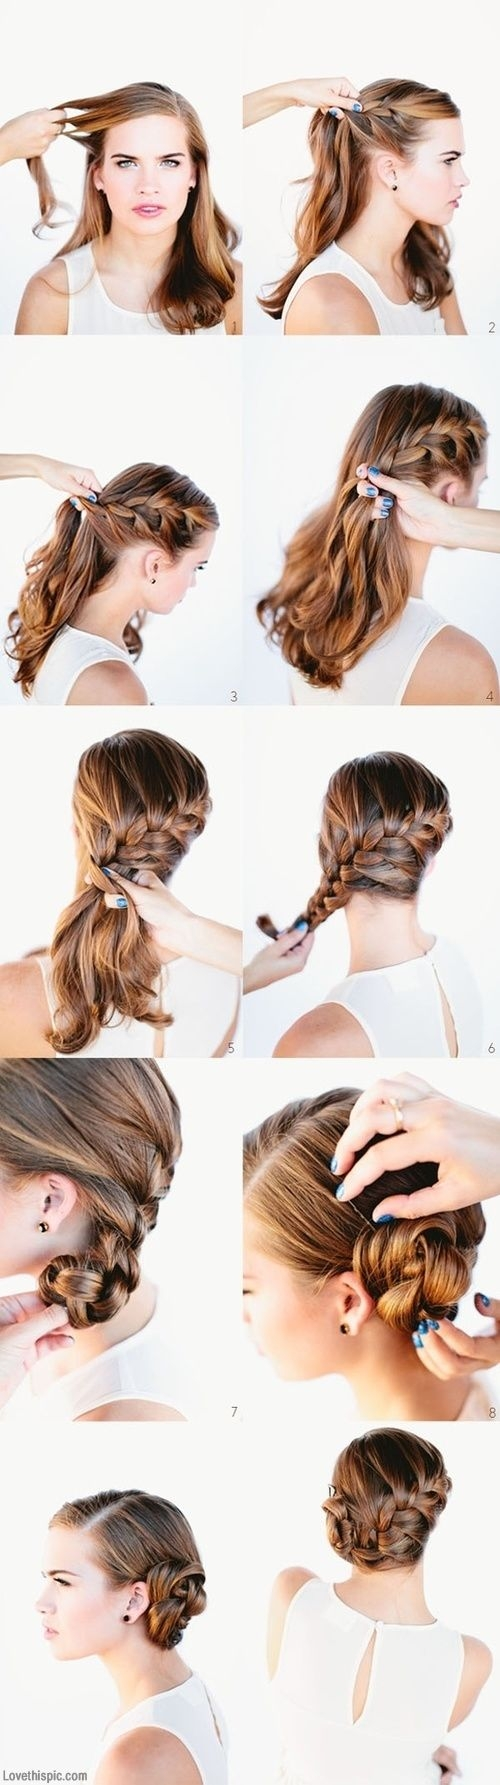 Diy wedding hairstyle wedding marriage diy diy crafts do it yourself diy wedding hairstyle wedding marriage diy diy crafts do it yourself diy art diy tips diy solutioingenieria Gallery